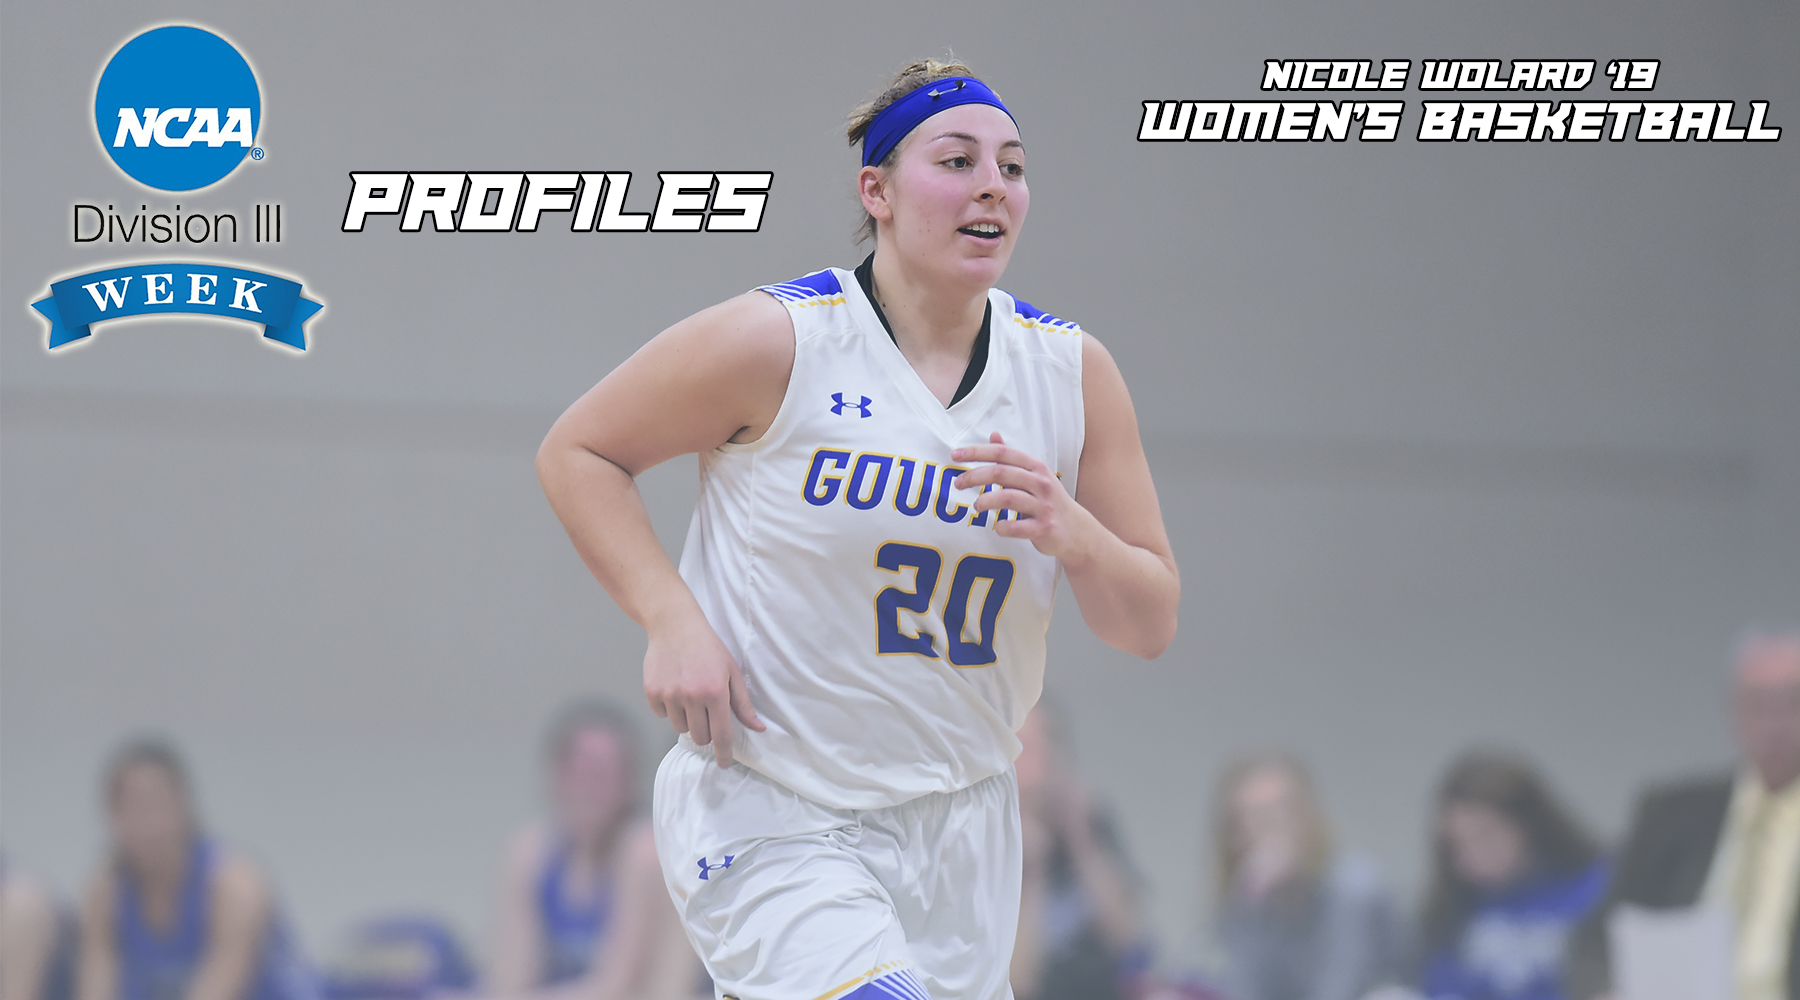 NCAA Division III Week Profiles: Women's Basketball's Nicole Wolard